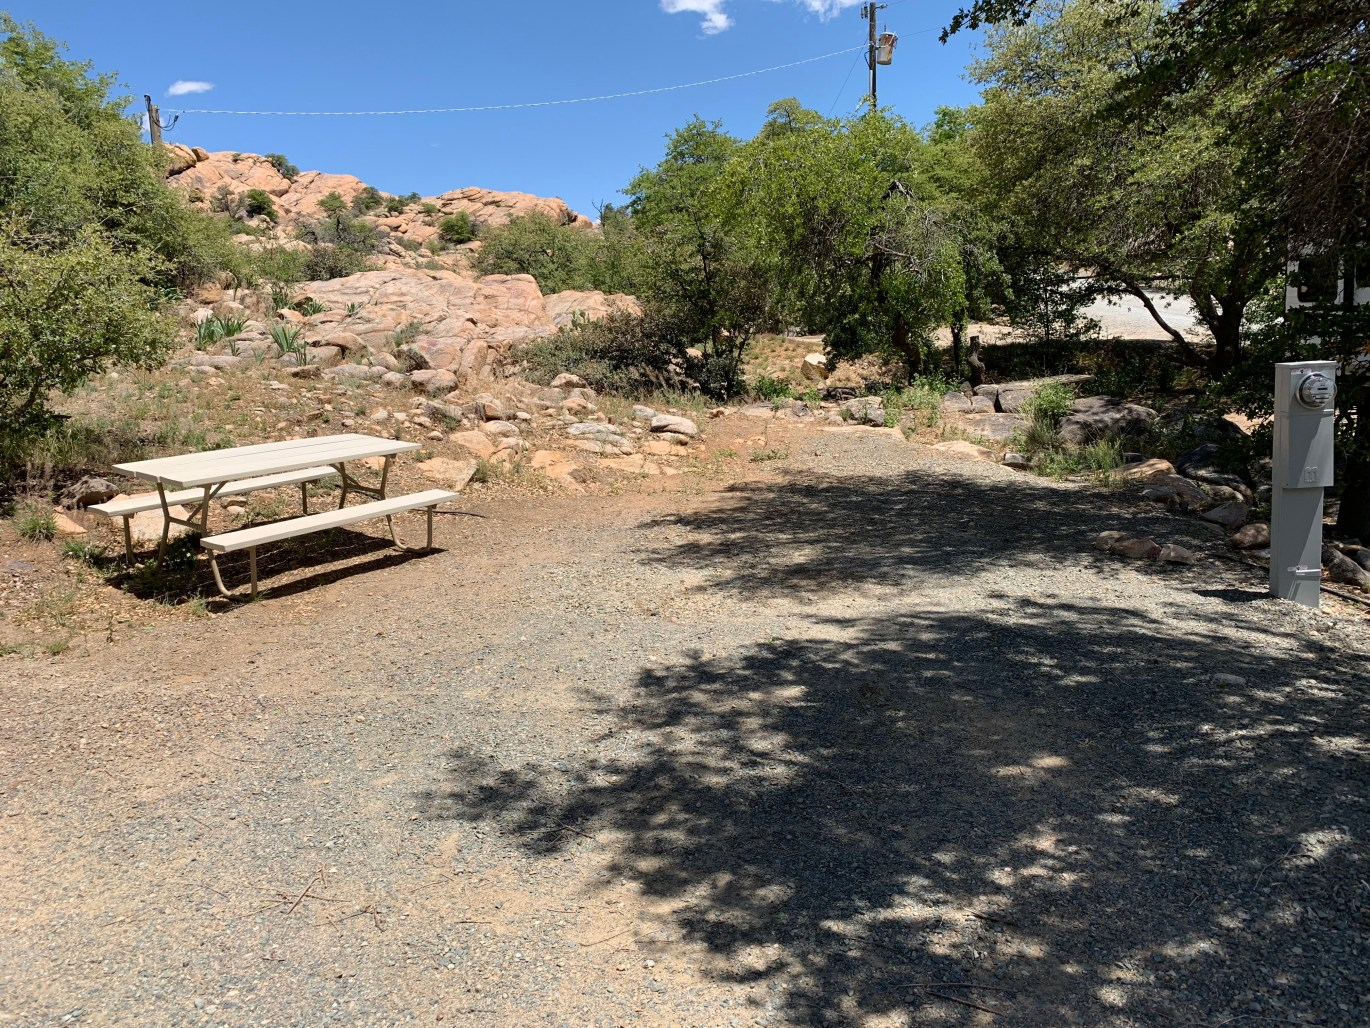 Campsite 2 at Point of Rocks RV Campground